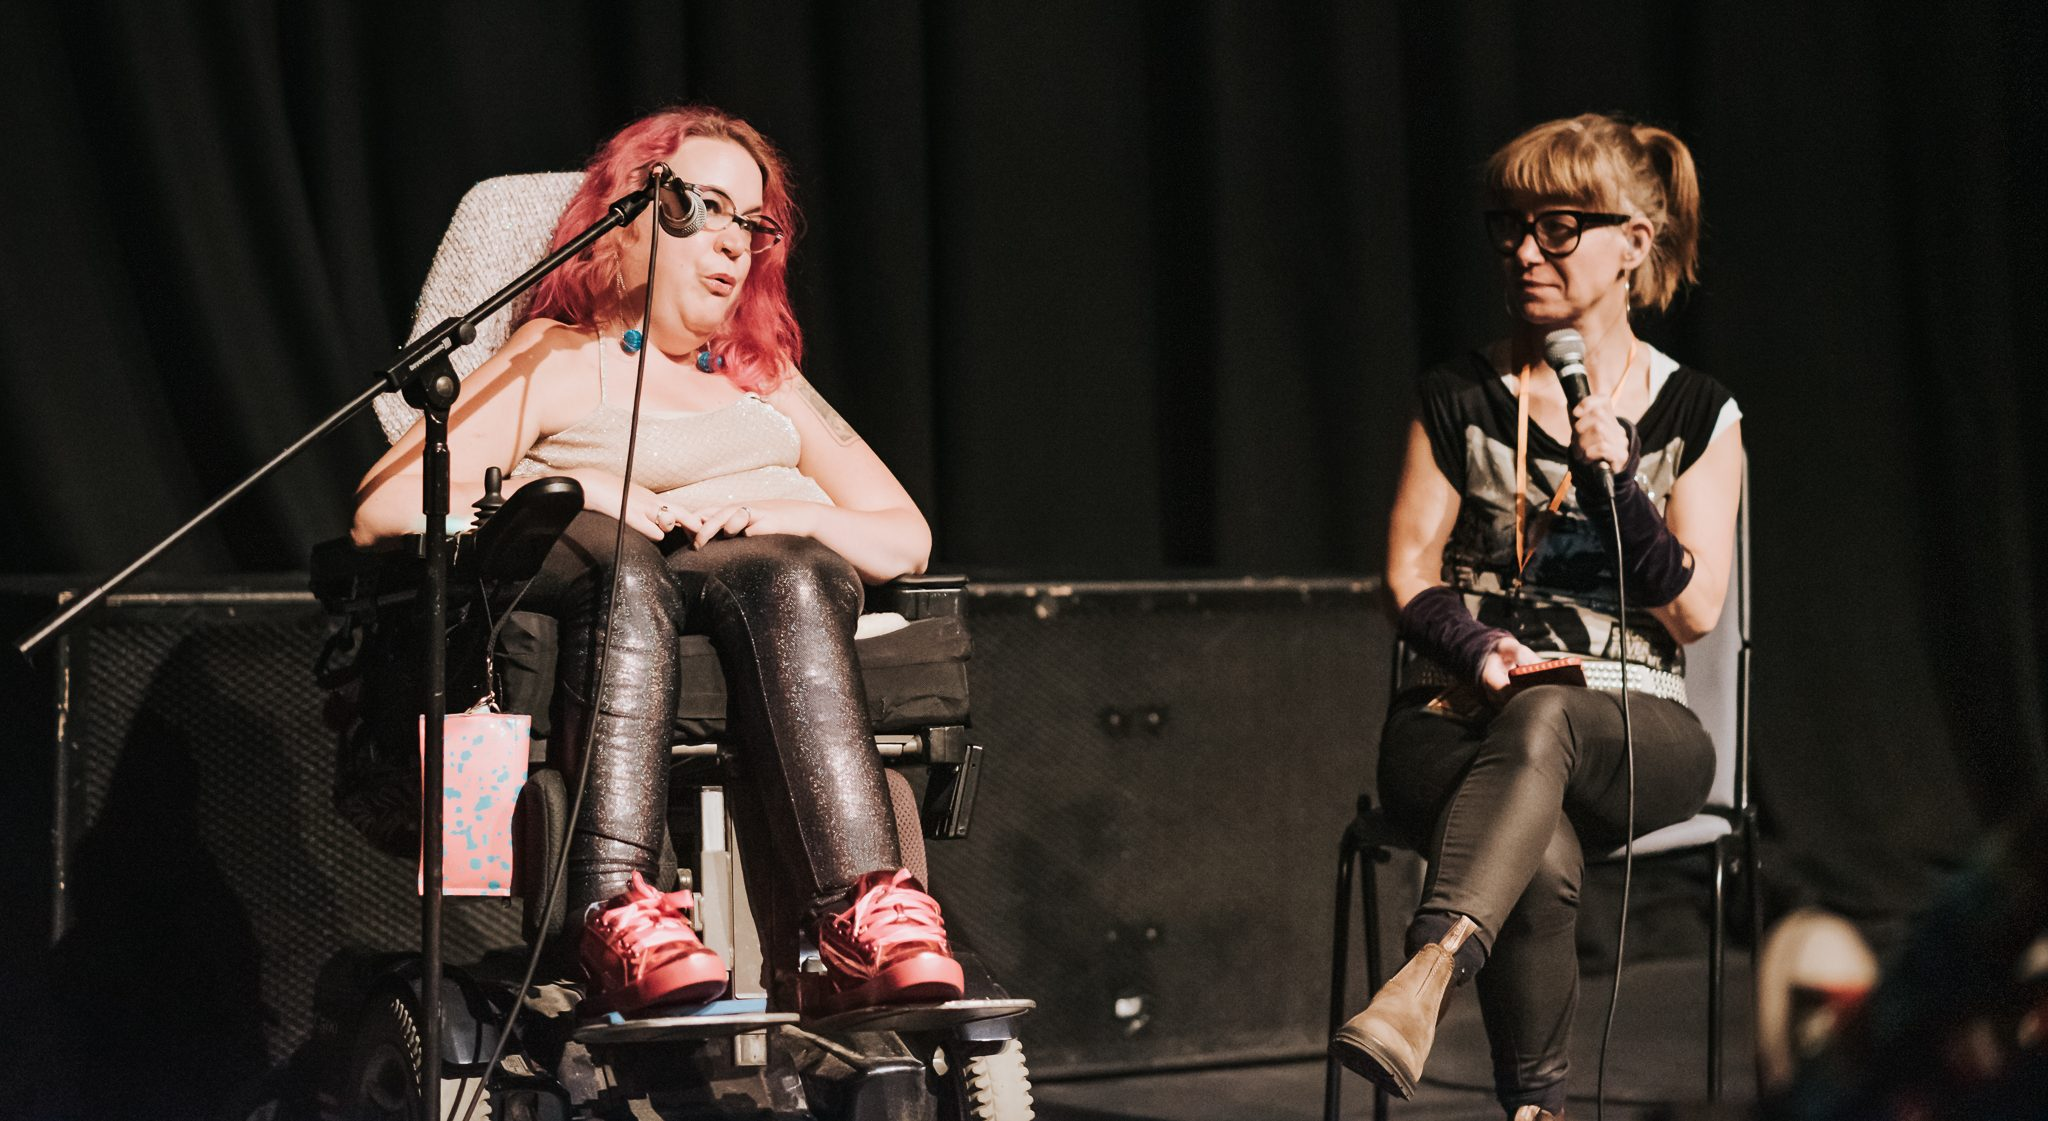 Two people talk on a stage at a film event. The person on the left uses a wheelchair, and has pink hair. The person on the right has blonde hair and sits in a chair. Both people are talking into microphones.